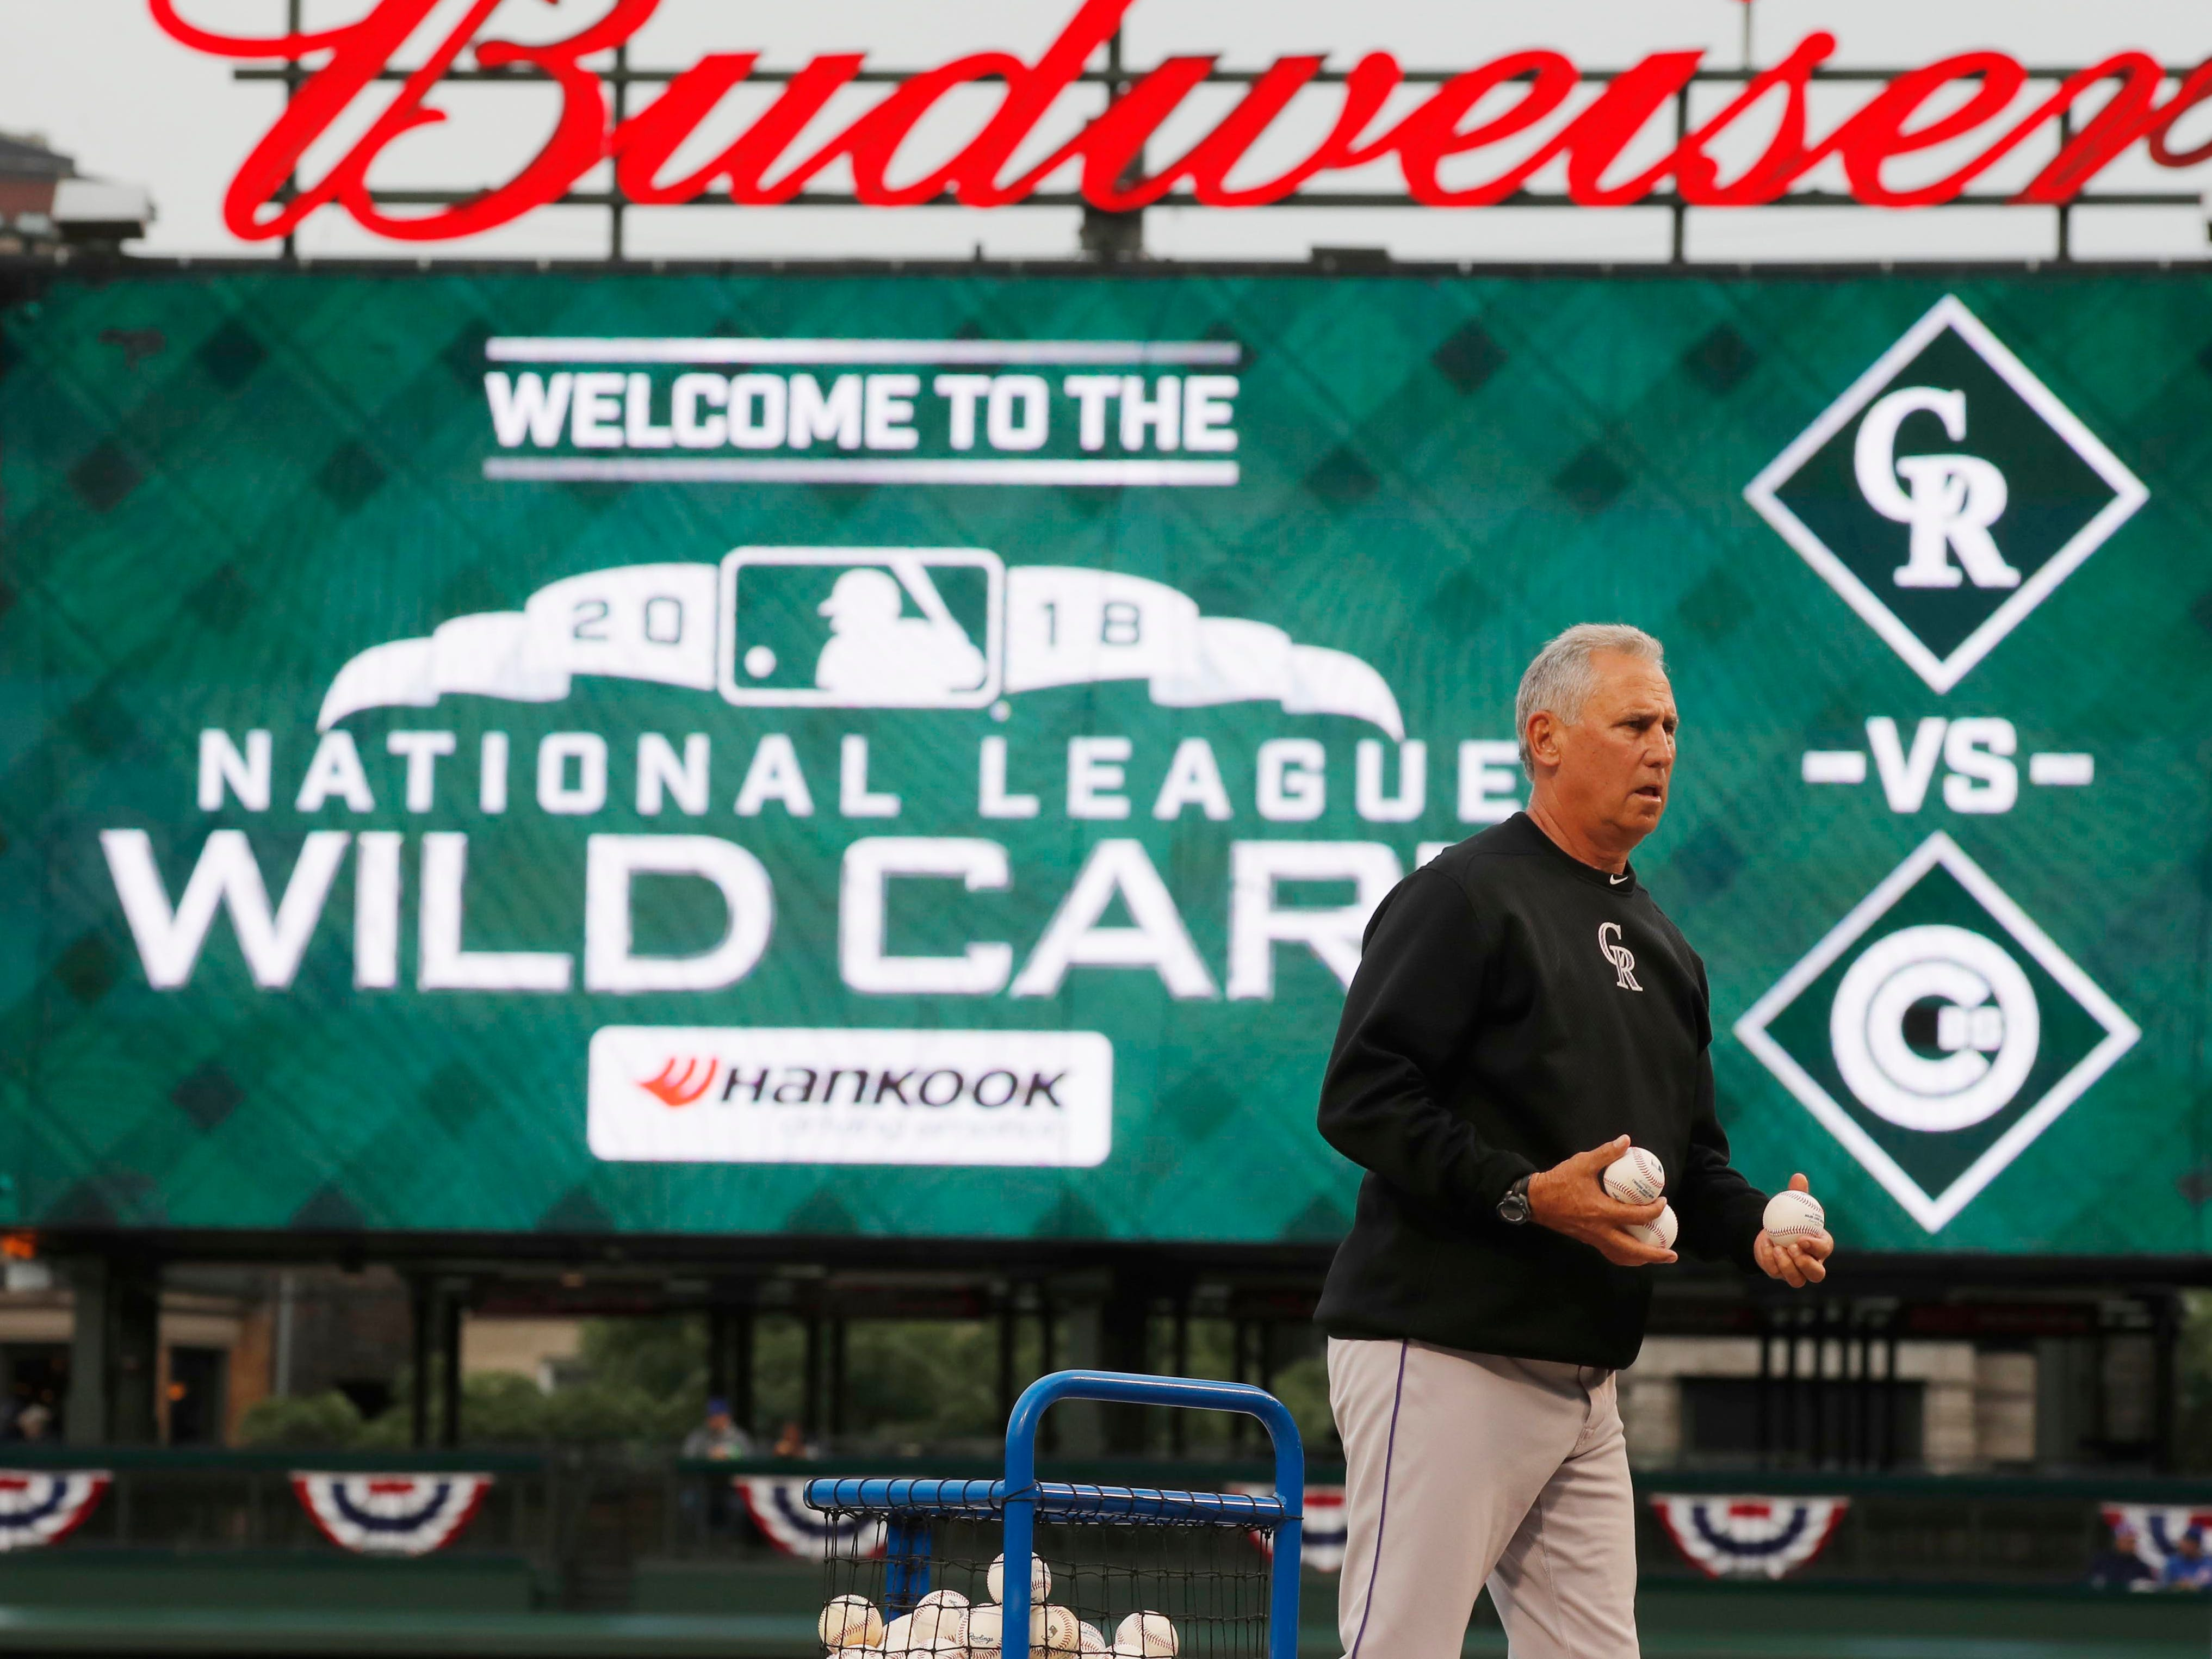 NL wild card: Rockies manager Bud Black tosses batting practice before the winner-take-all game.